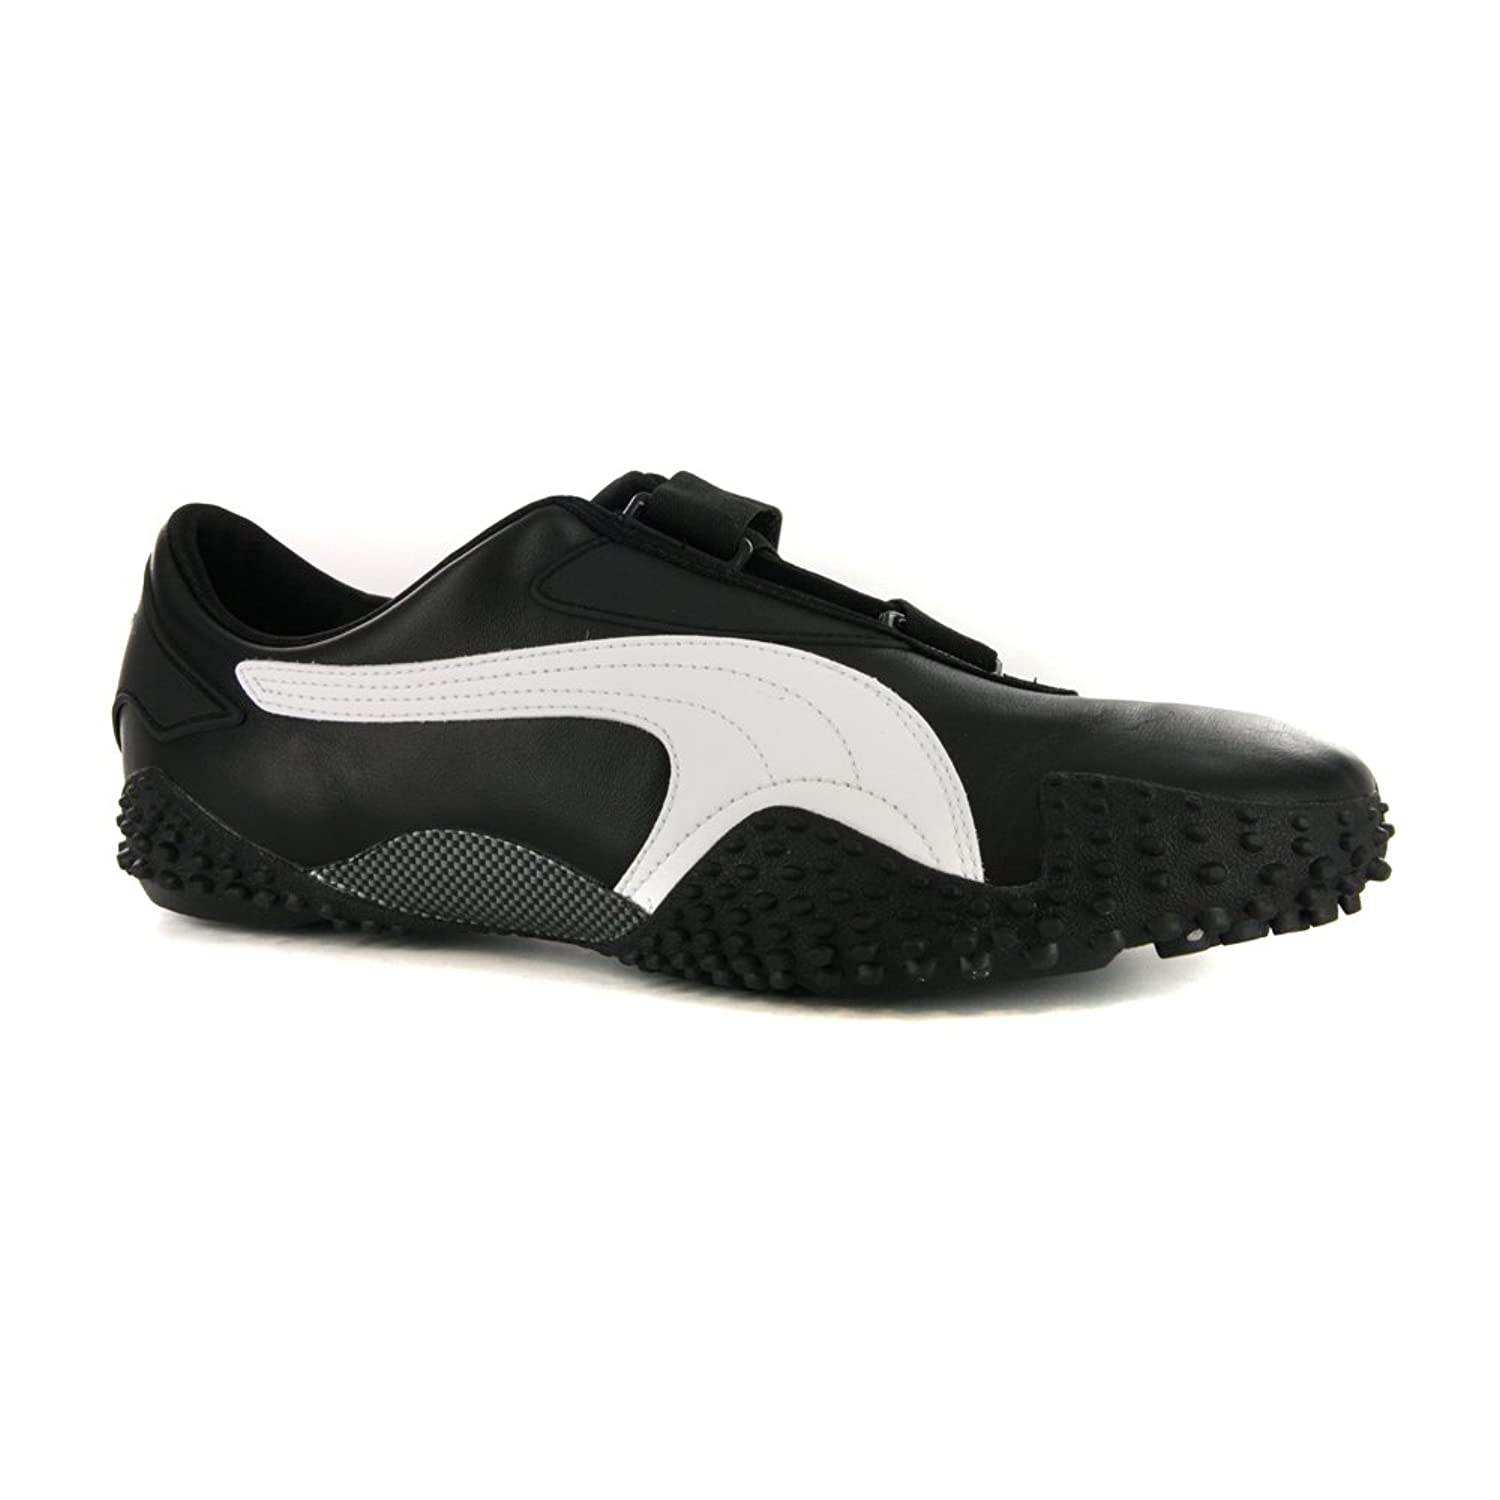 Mens Puma Mostro Leather Black White Trainers UK 9: Amazon.co.uk: Shoes &  Bags